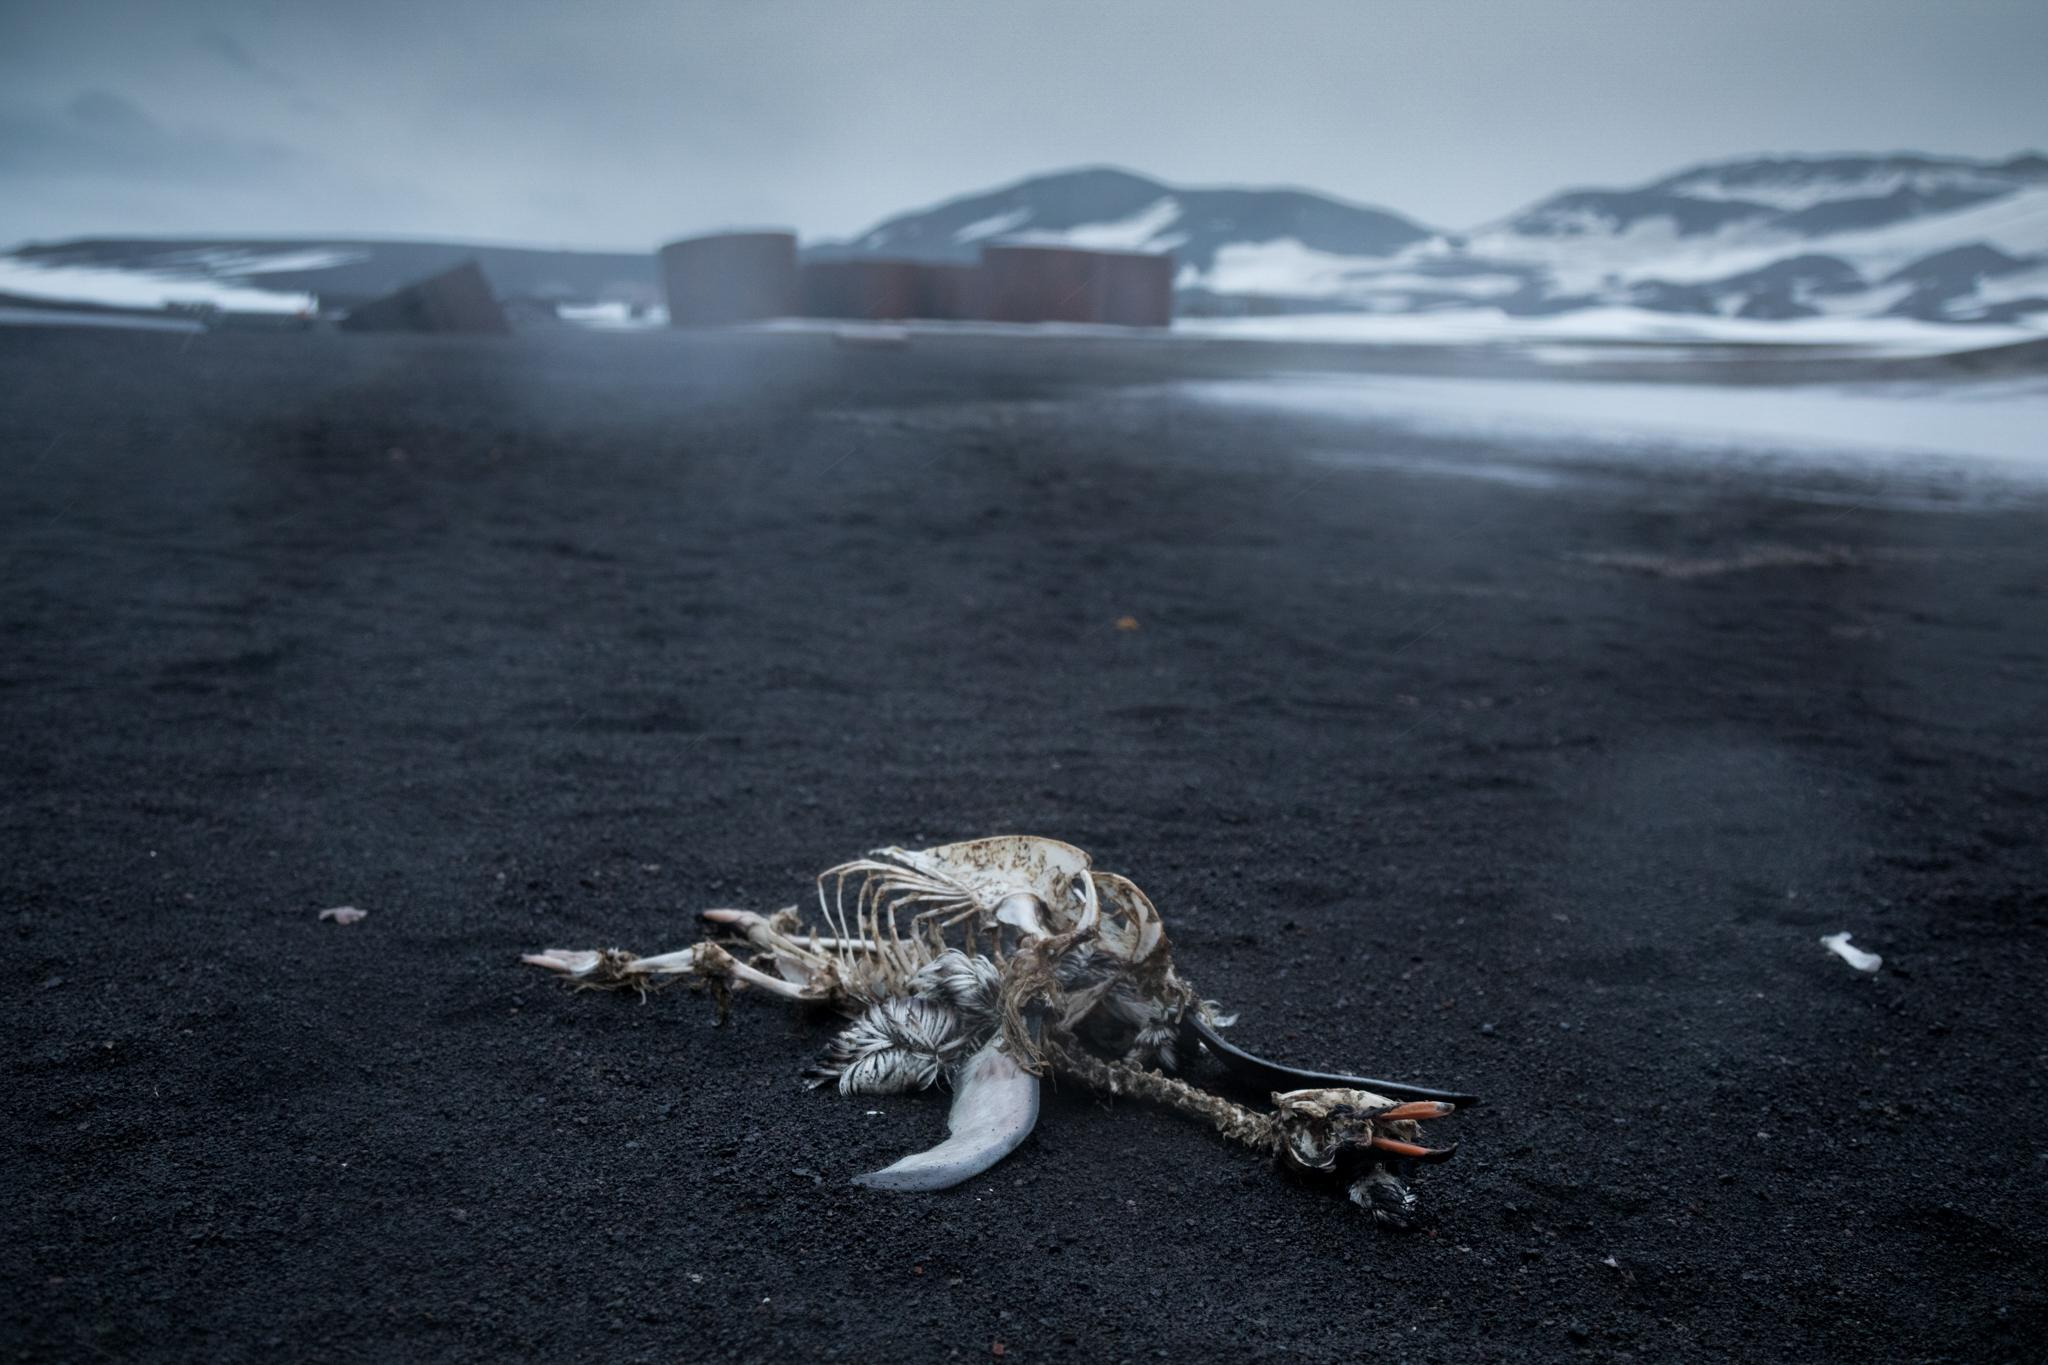 At Whaler's Bay in the Deception Island caldera, the remains of a gentoo penguin lies on the black sand beach. In the background are the remains of the Hektor Whaling Station, and the massive tanks once used to store whale oil and fuel.